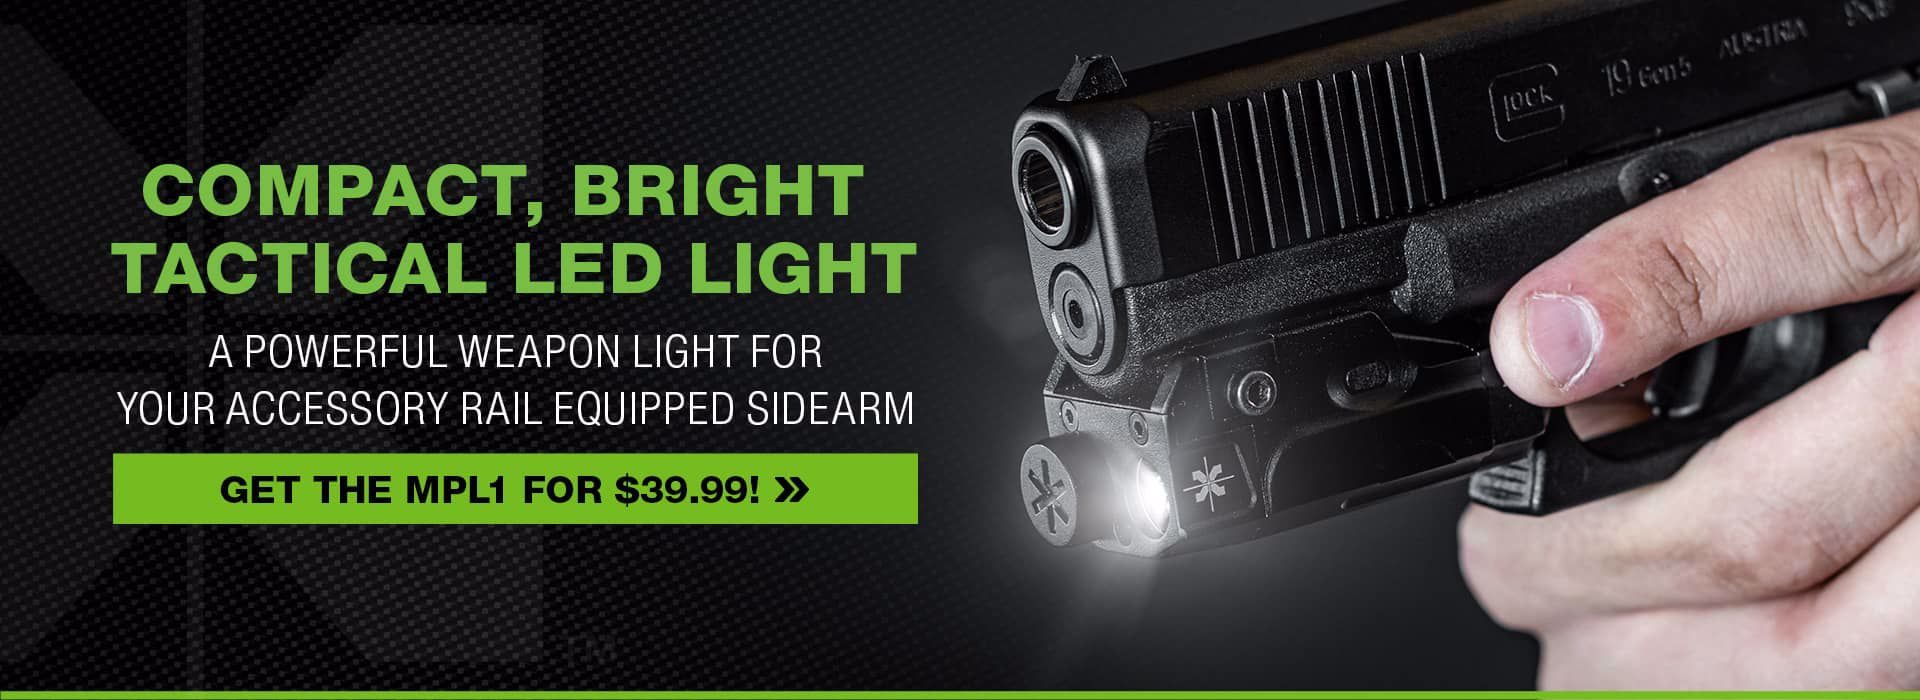 Compact, bright, tactical LED light. A powerful weapon light for your accessory rail equipped sidearm. Get the MPL1 for $39.00!